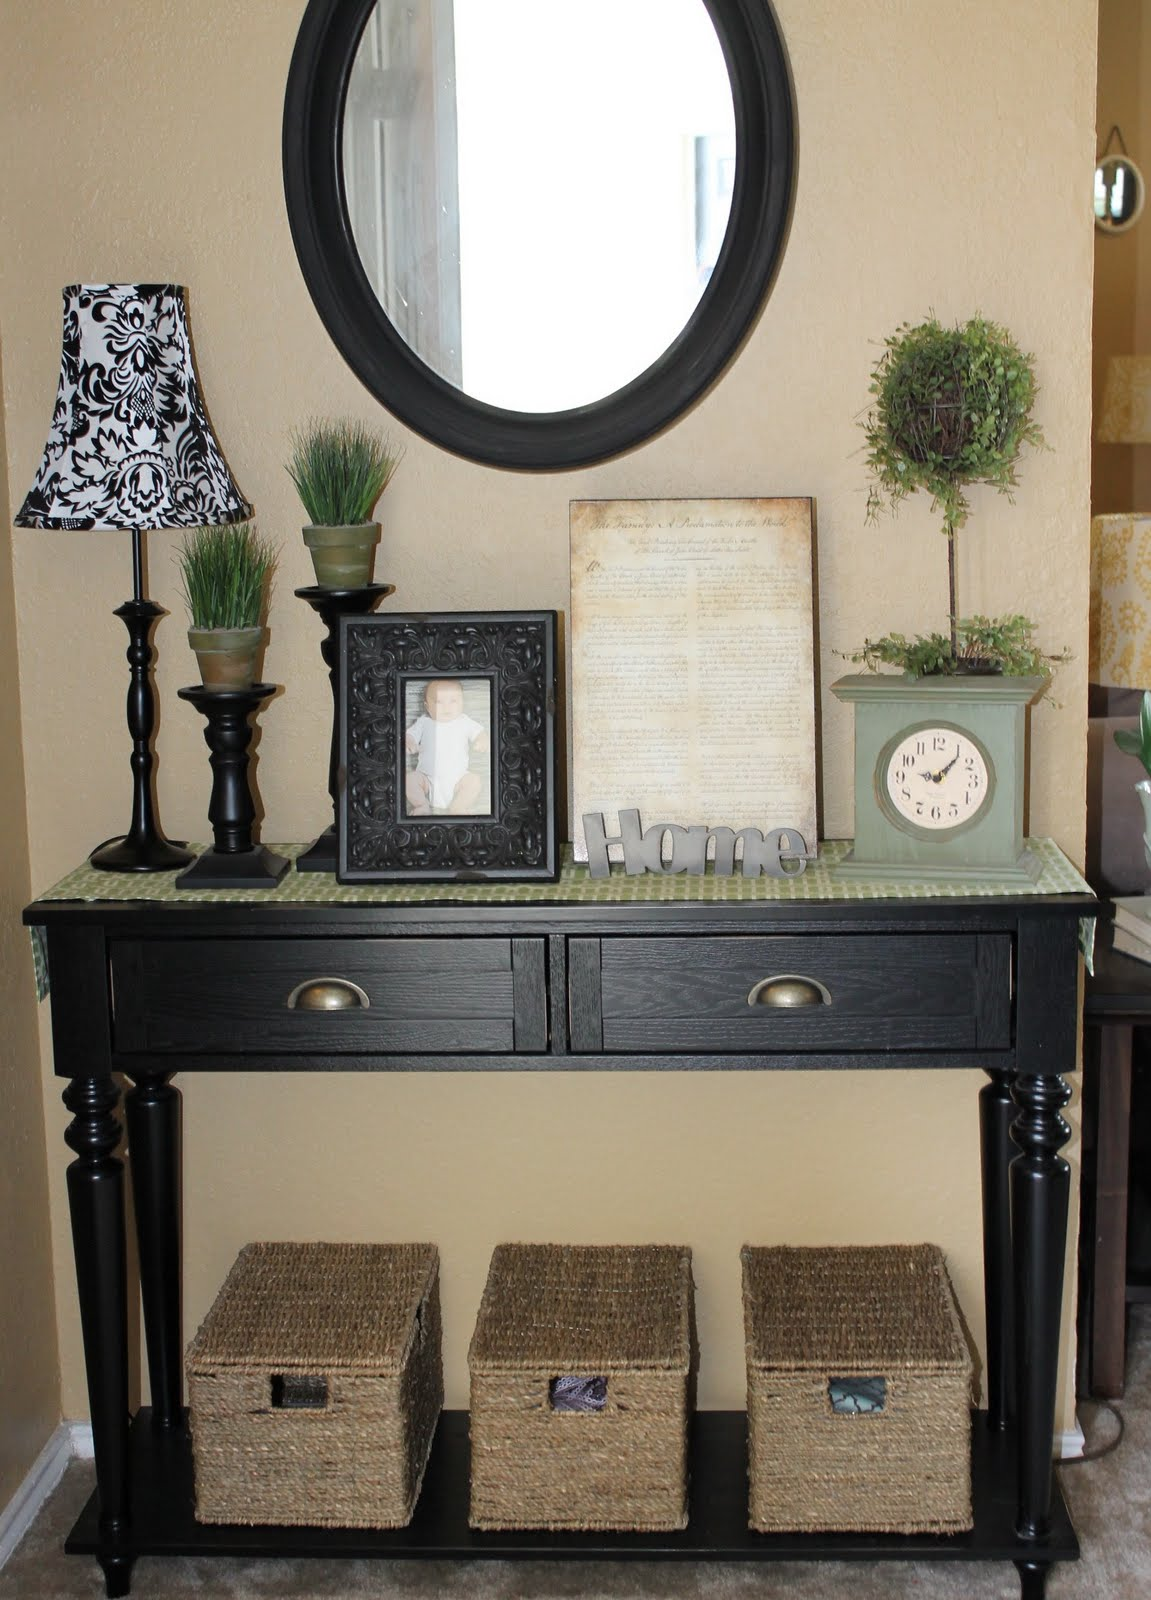 The walkers entryway table dilemma Entry table design ideas